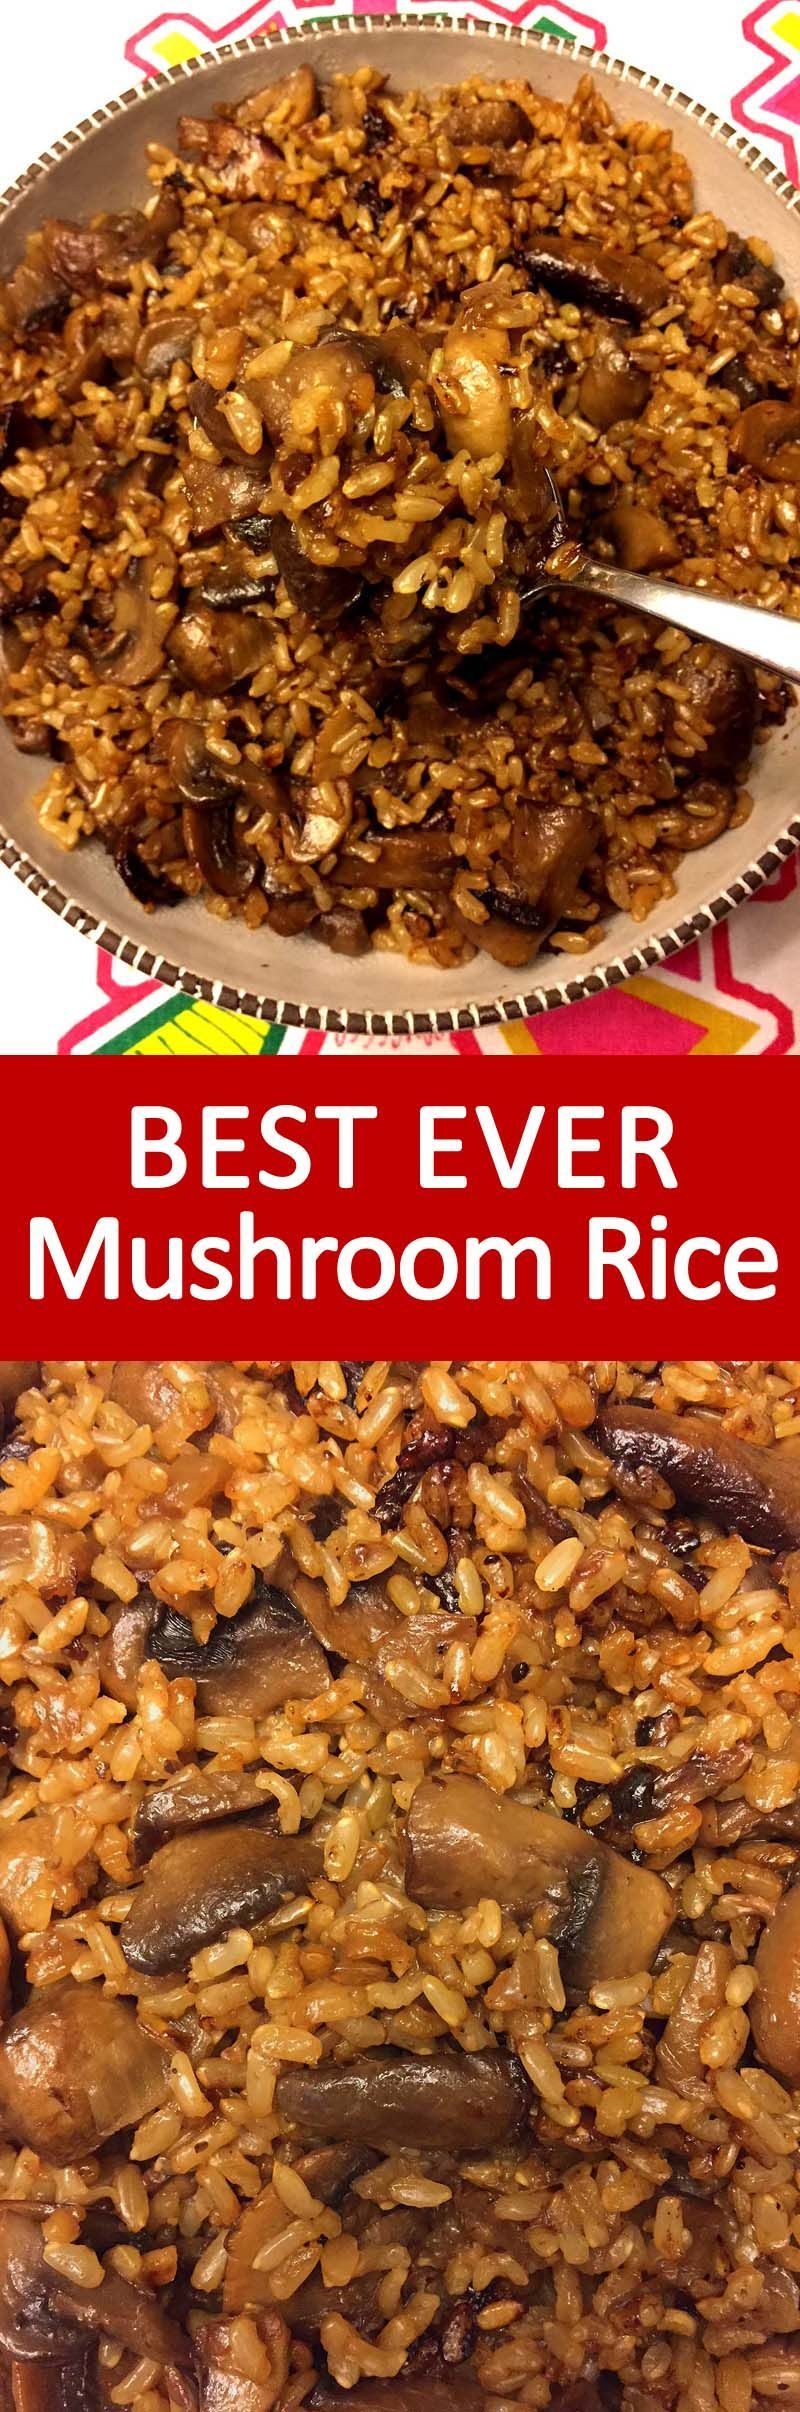 Photo of Mushroom Rice Recipe With White Or Brown Rice